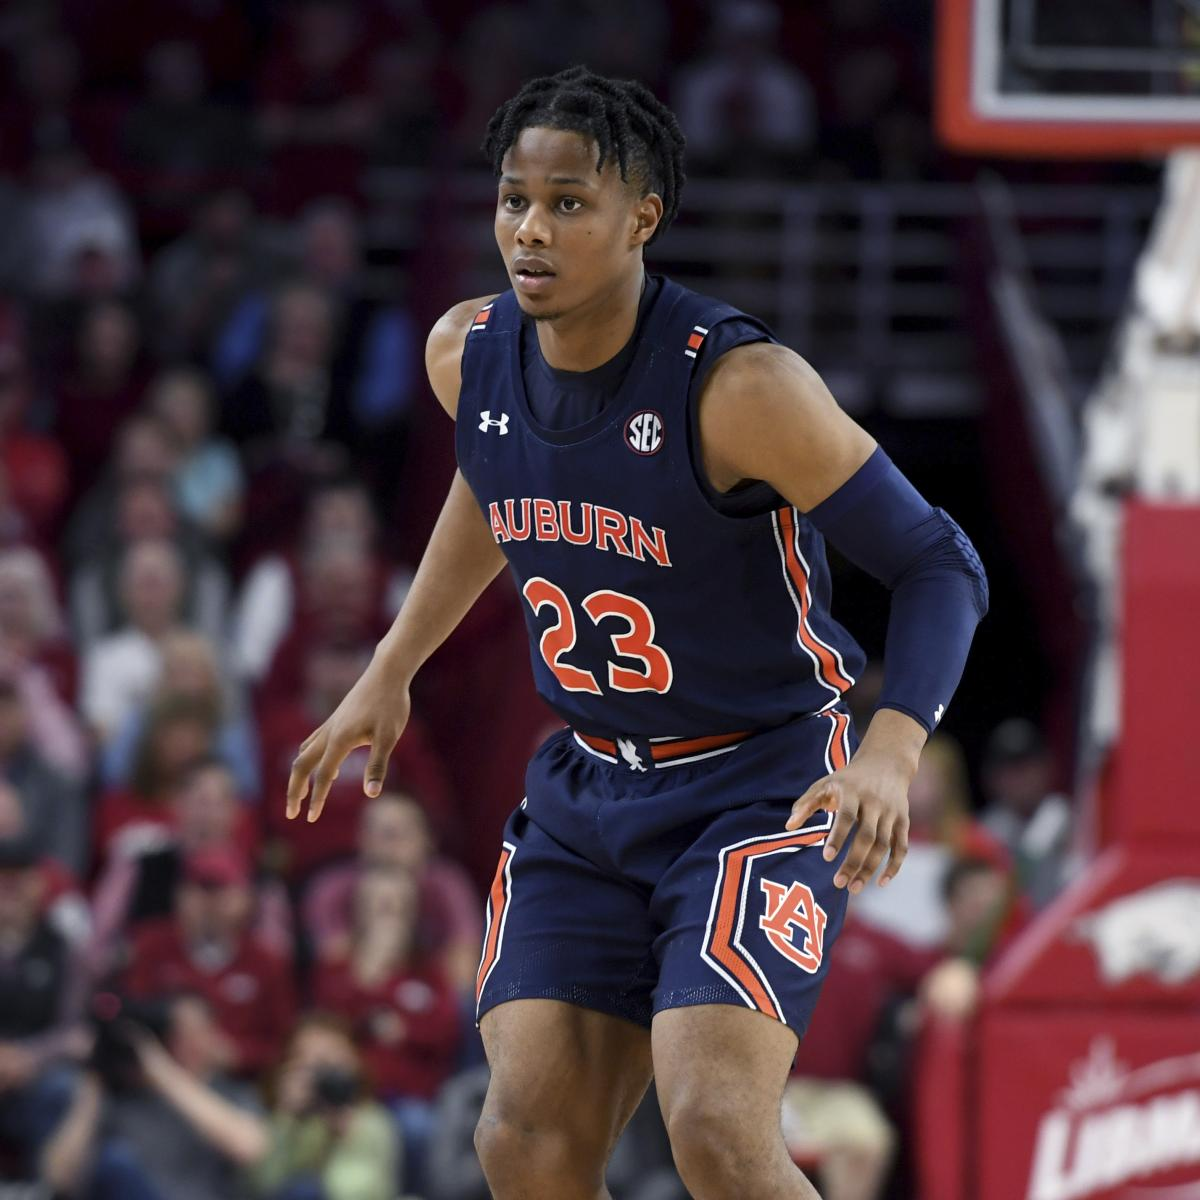 NBA Mock Draft 2020: Predictions for Isaac Okoro and Top Defensive Prospects